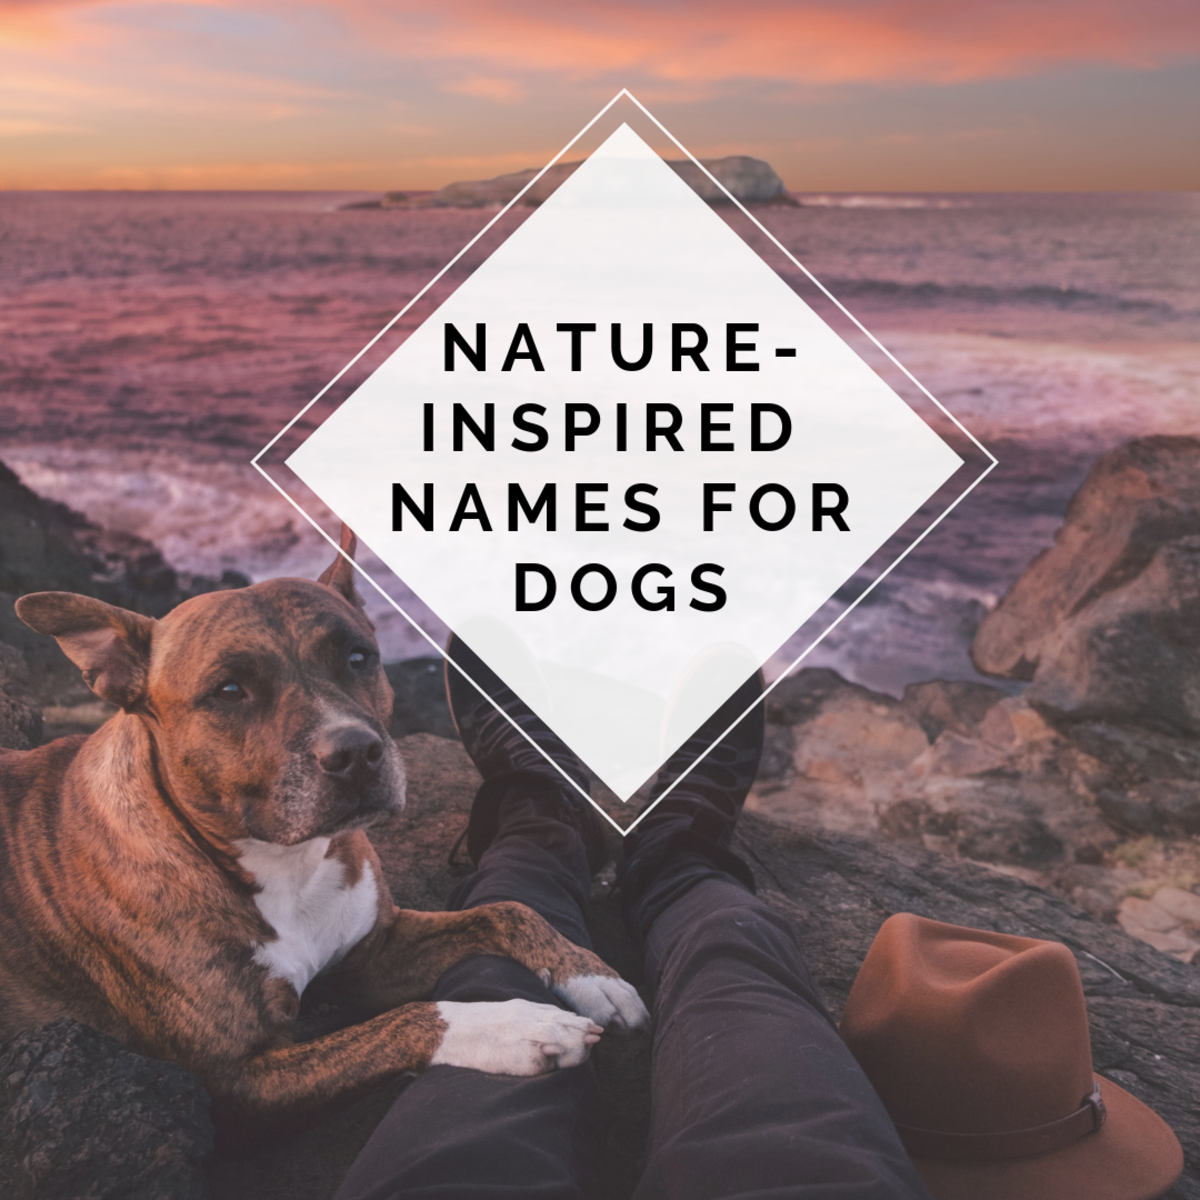 Names inspired by nature for dogs.